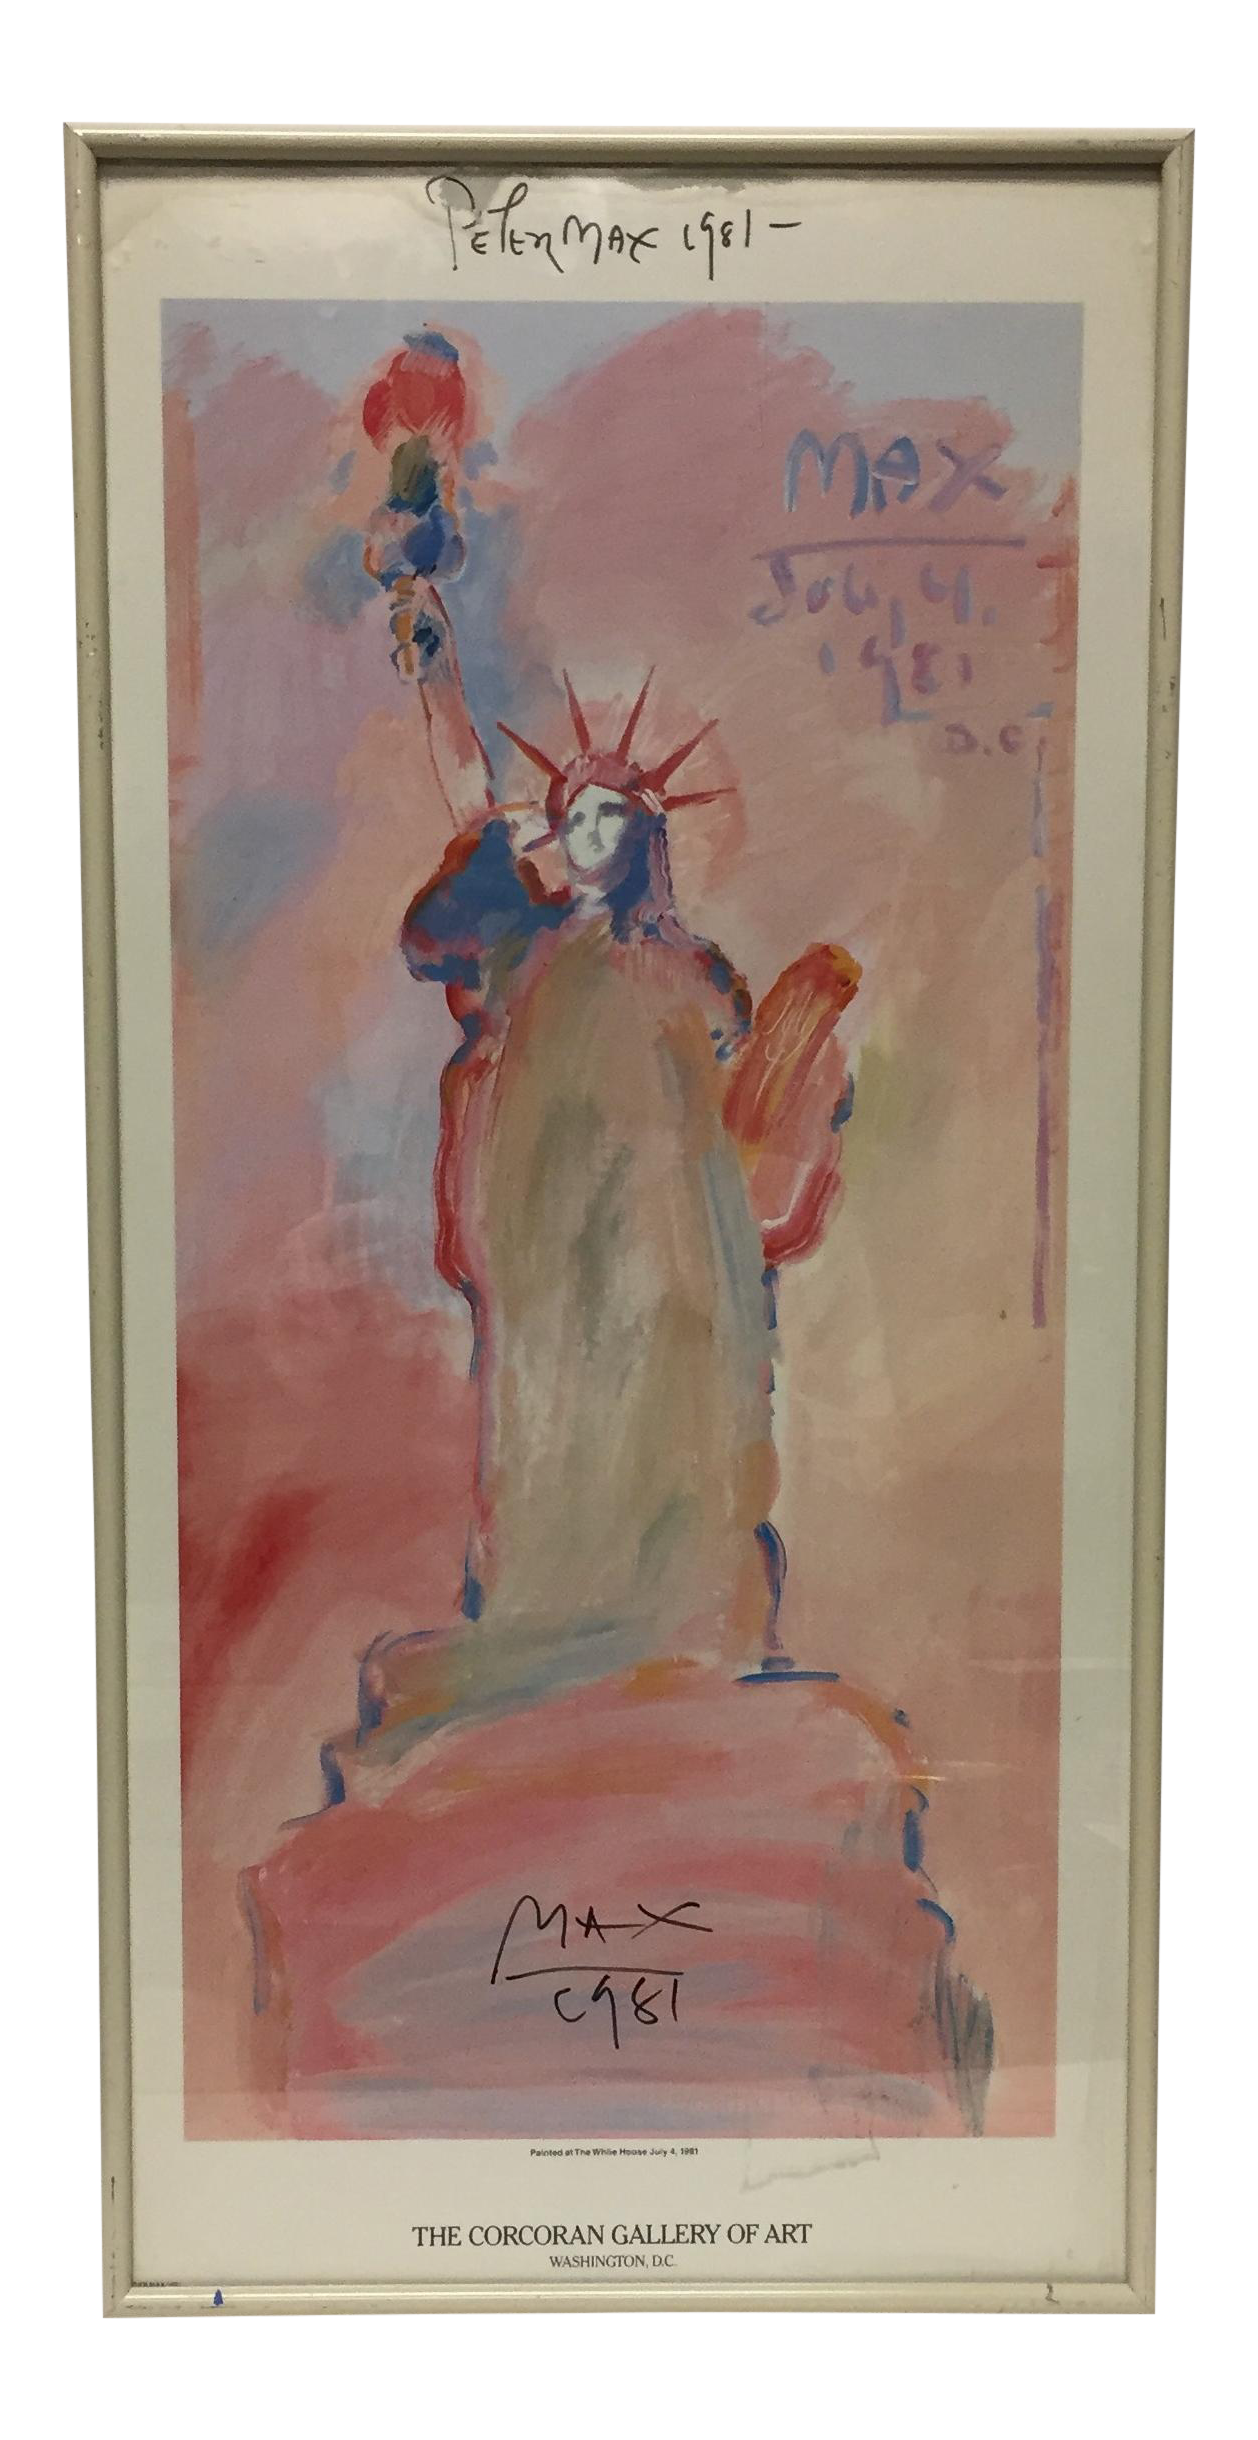 Liberty drawing watercolor. Peter max signed statue